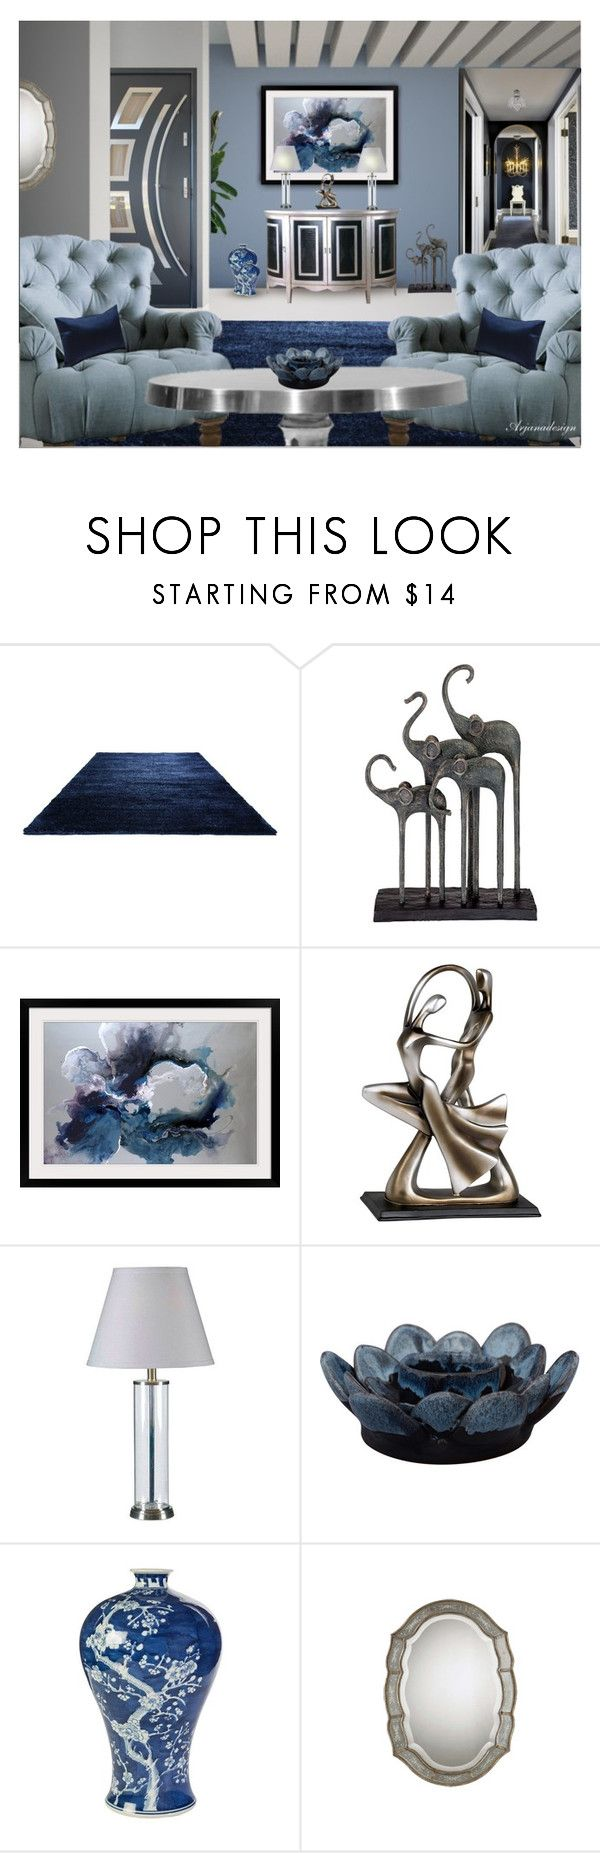 """FRIDAY NIGHT BLUES"" by arjanadesign ❤ liked on Polyvore featuring interior, interiors, interior design, casa, home decor, interior decorating, HallWay, Pulaski, Universal Lighting and Decor e Kravet"